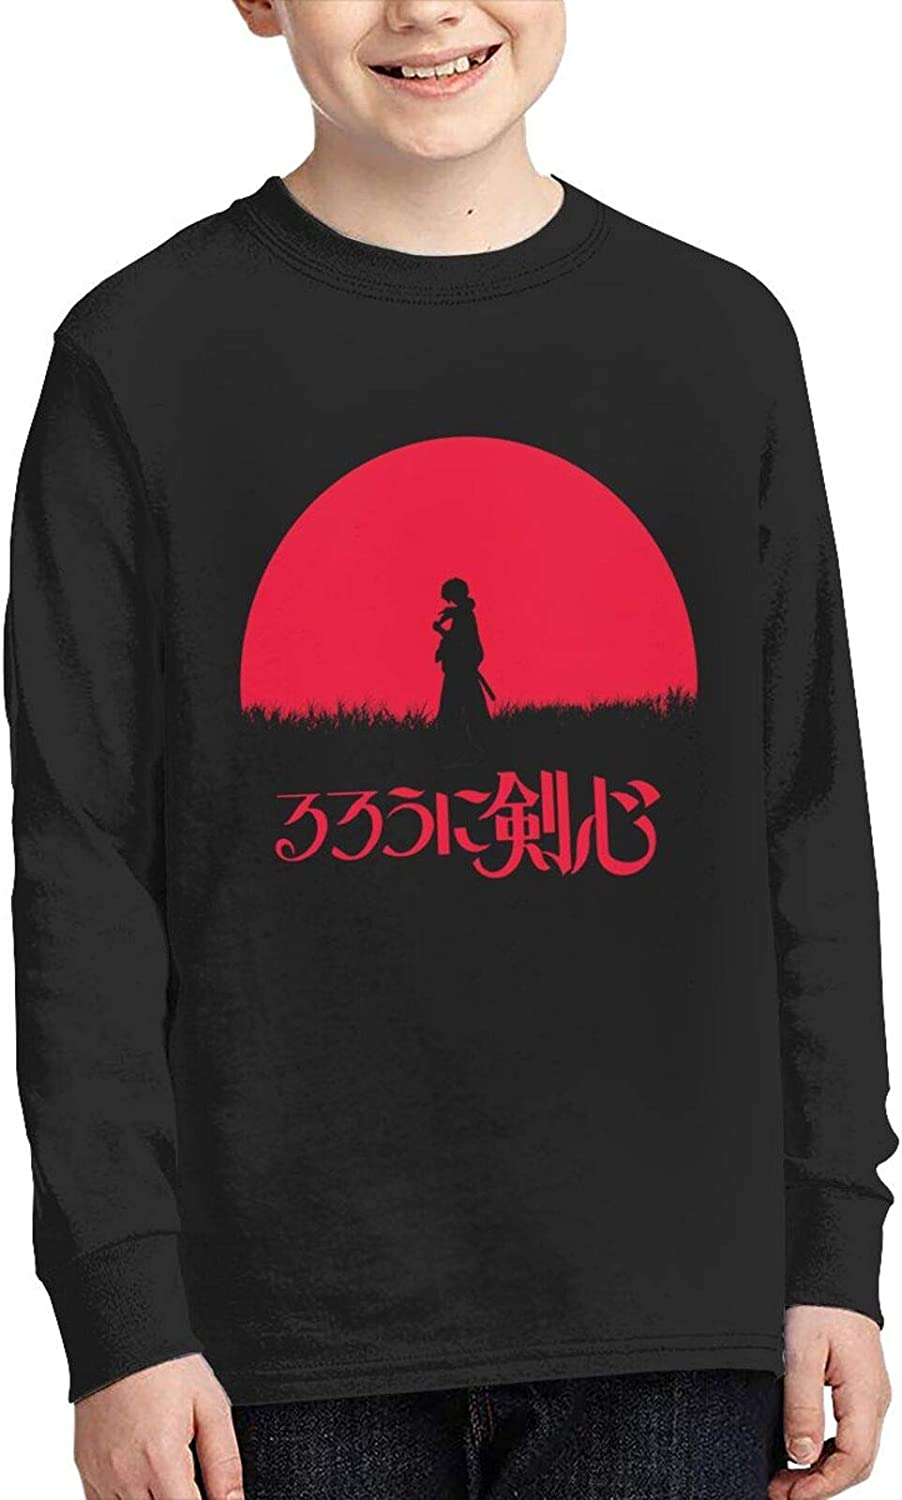 Teens Boys Cotton 3D Printed Novelty Round Neck Long Sleeve T-Shirts Anime Graphic Tees Shirt Tops